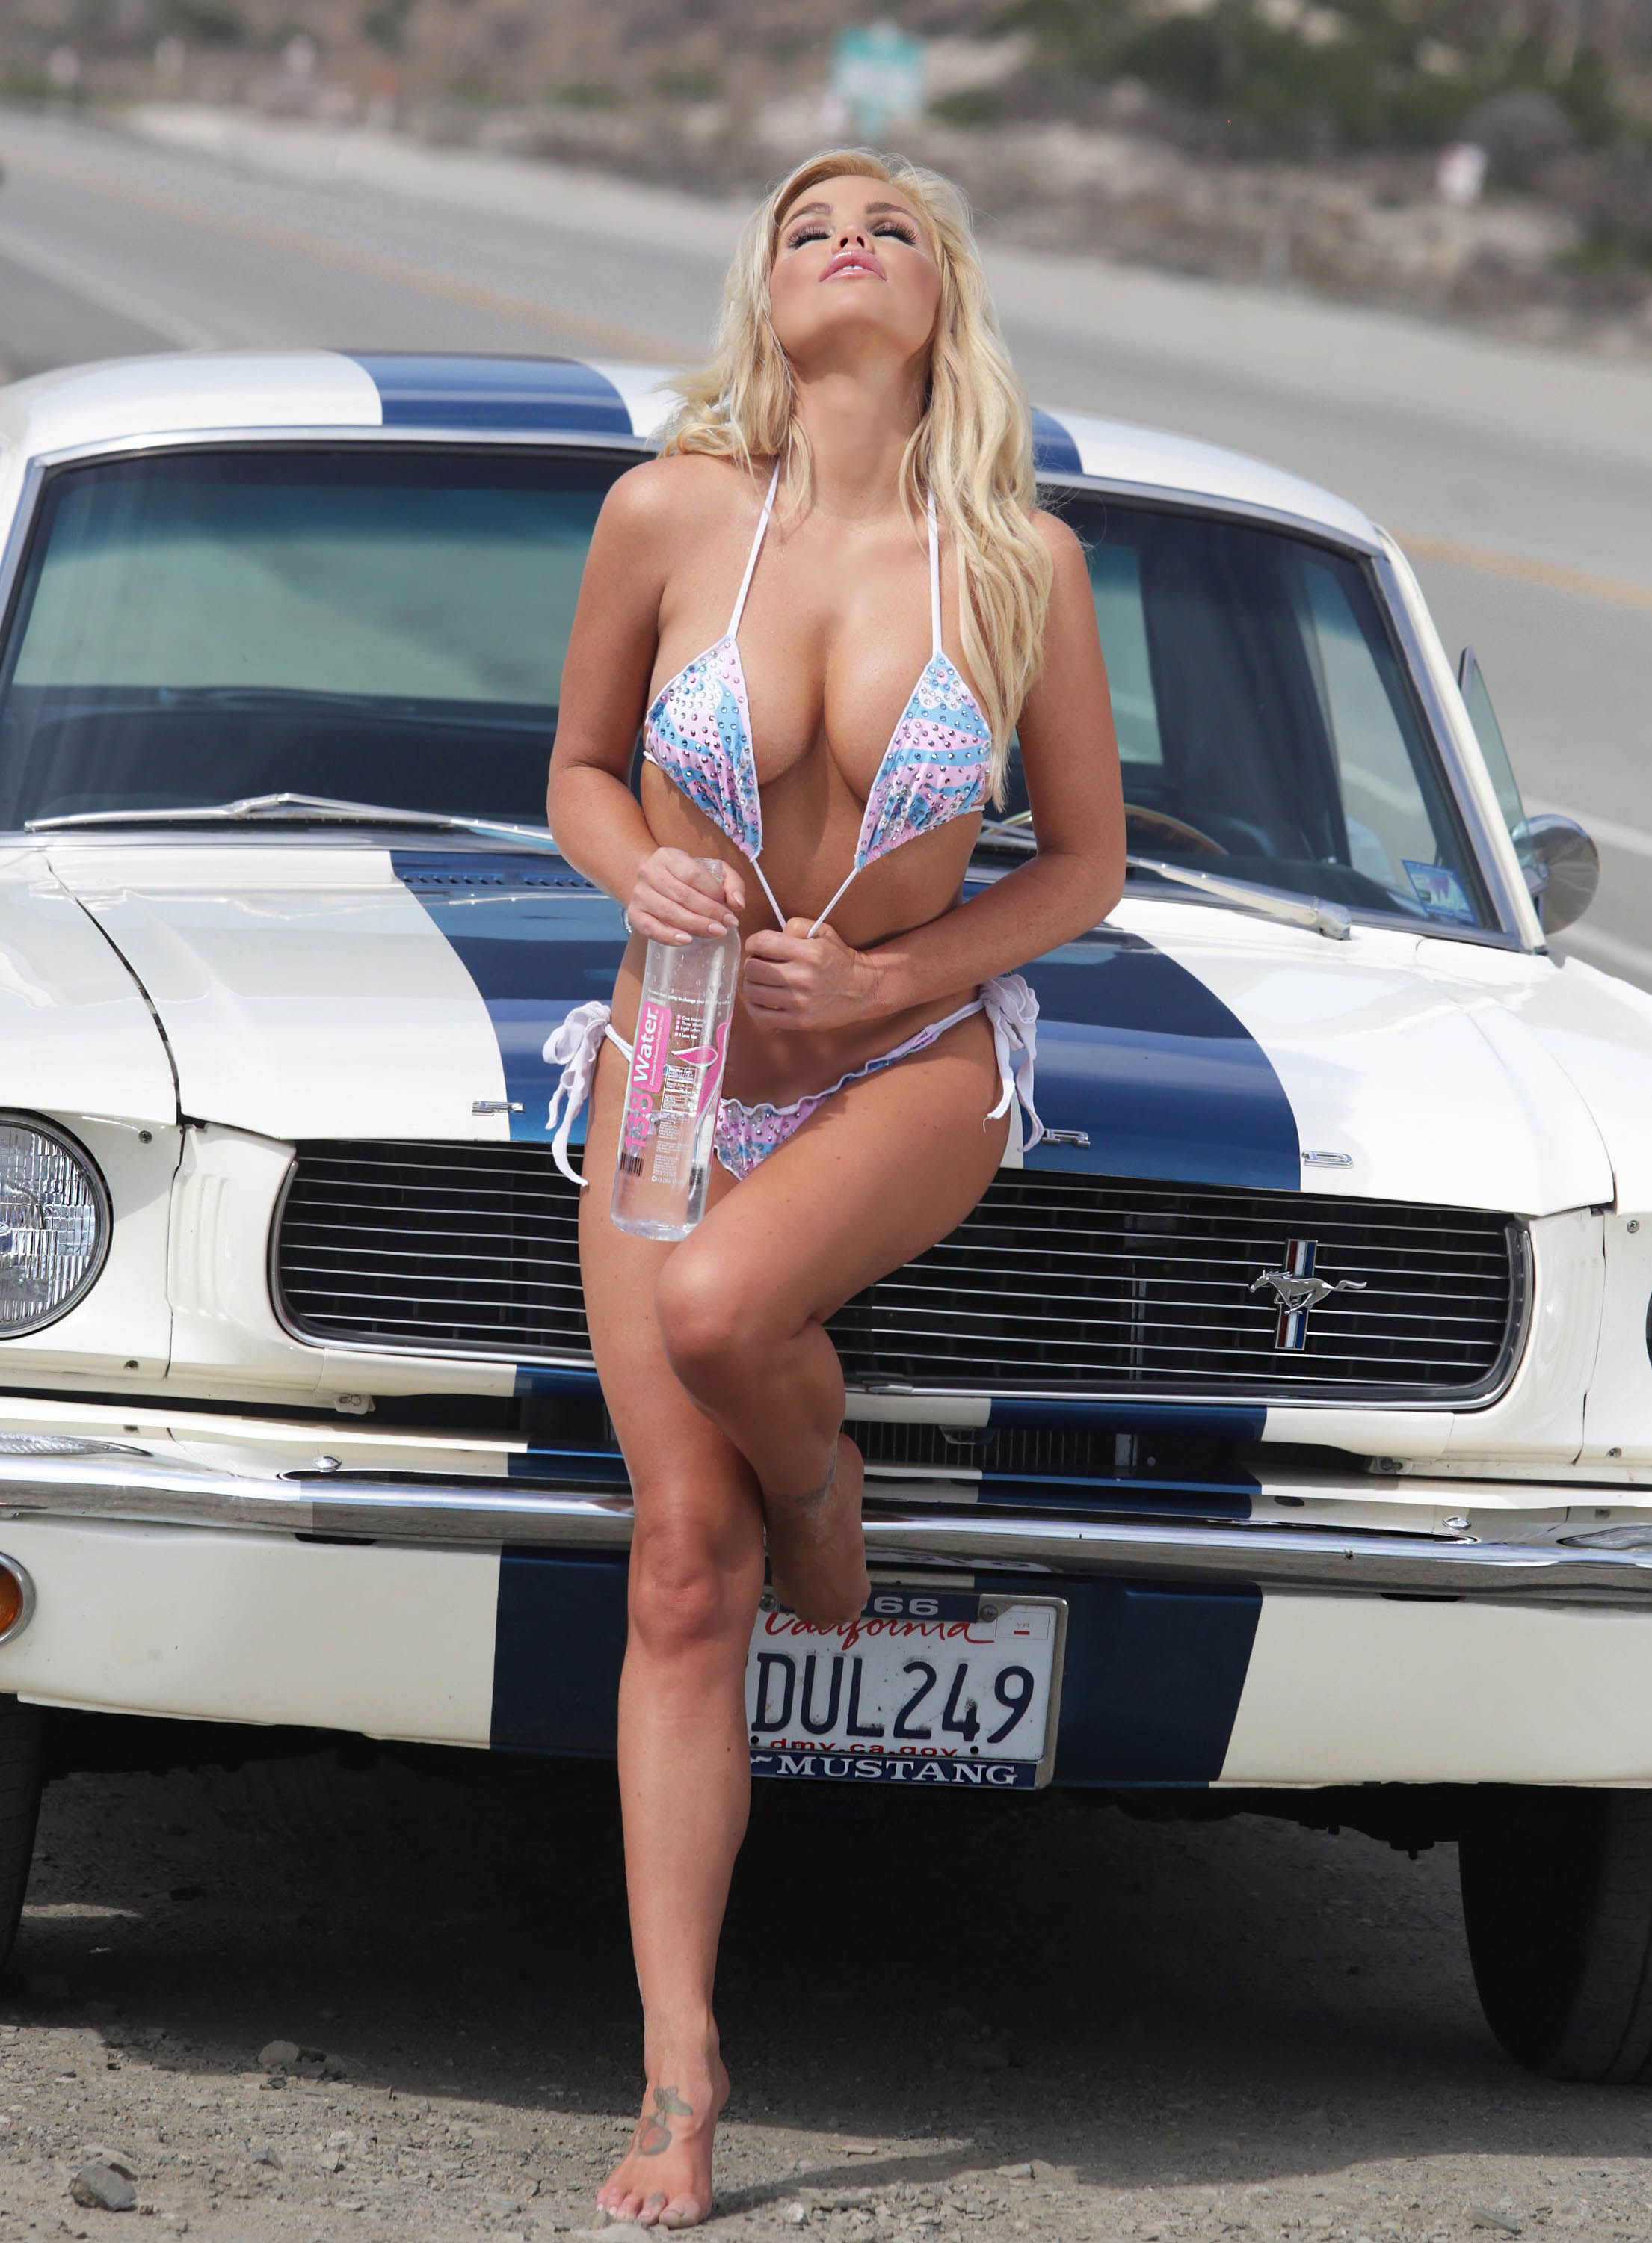 Are not hot girls and mustang cars consider, that